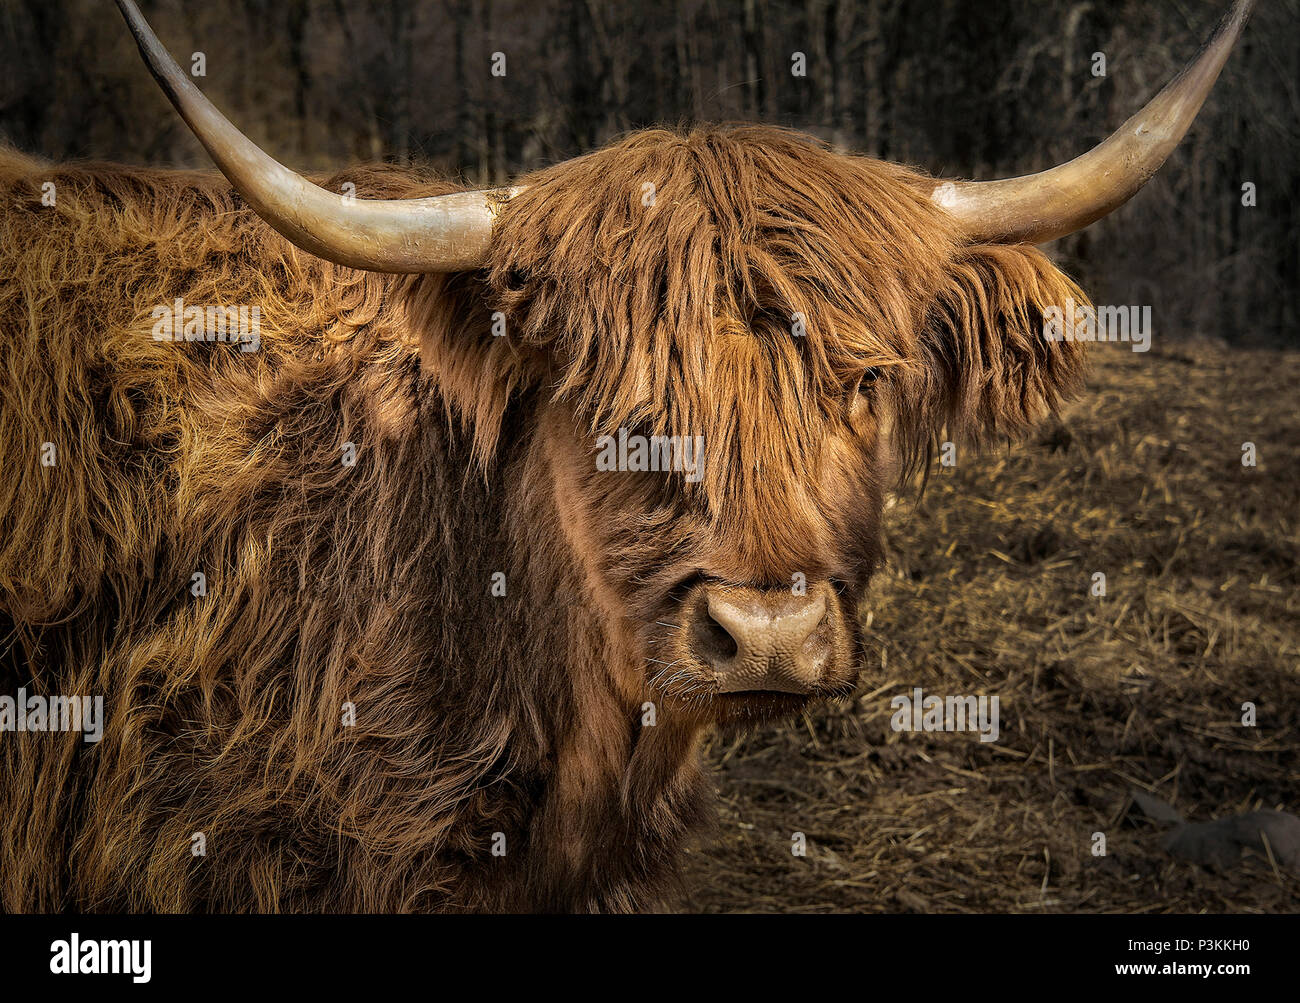 Scottish Highland Cattle - Stock Image